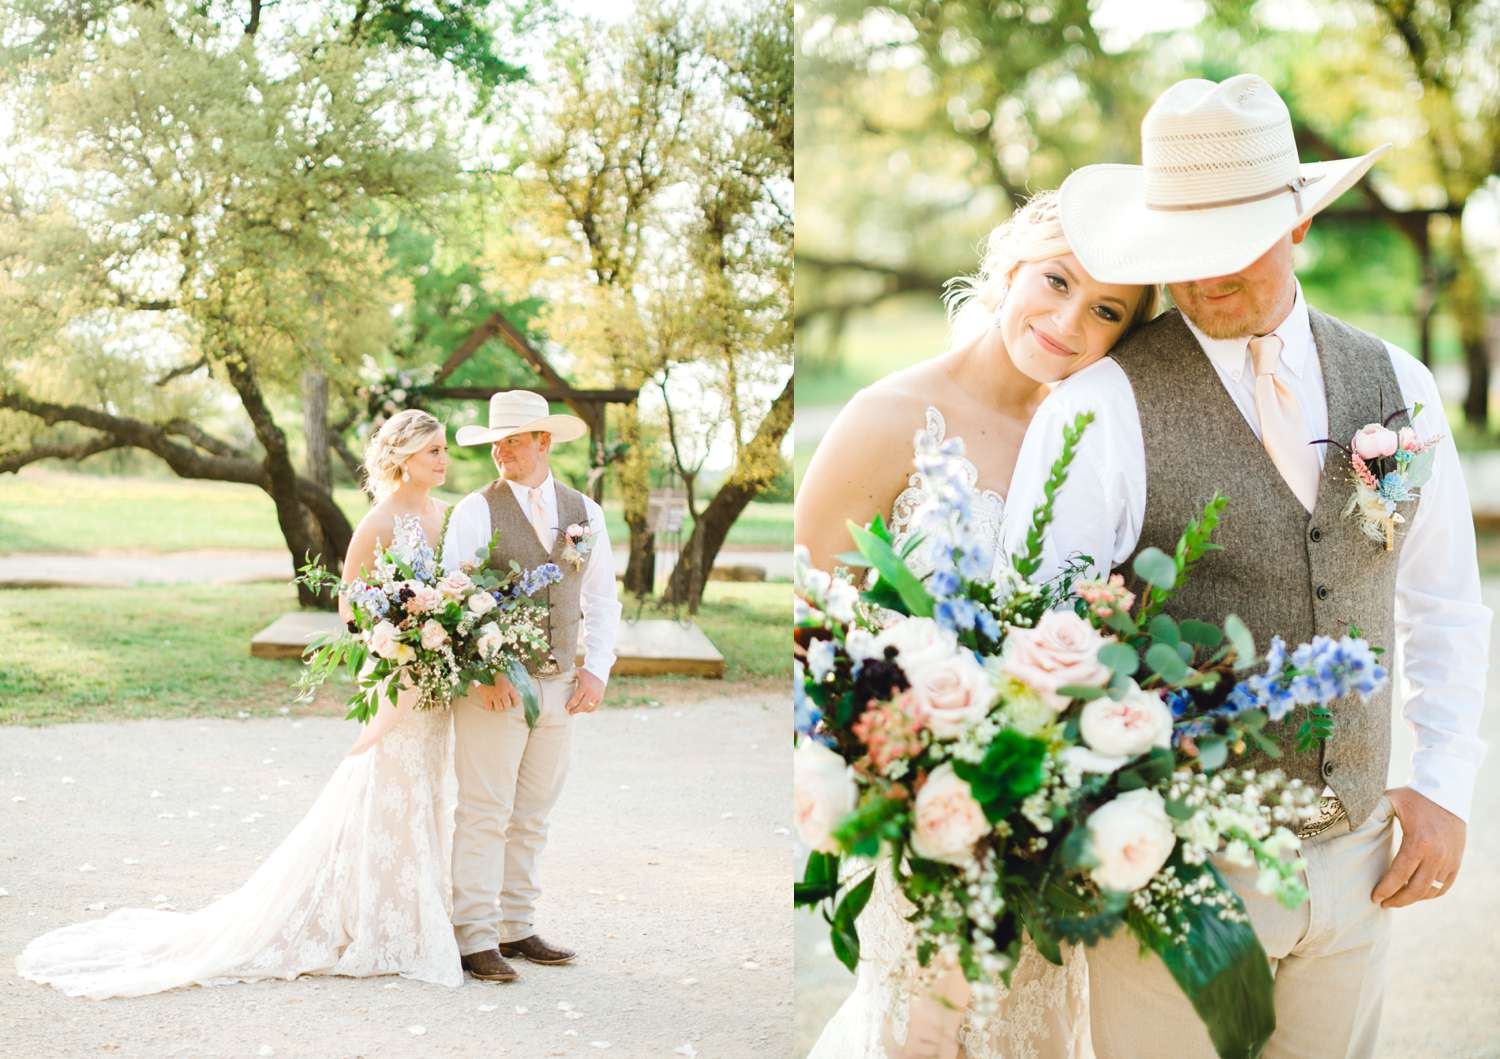 SARAH+TREVOR+BADGETT+SPARROW+CREEK+GRAHAM+TEXAS+ALLEEJ+WEDDINGS_0098.jpg